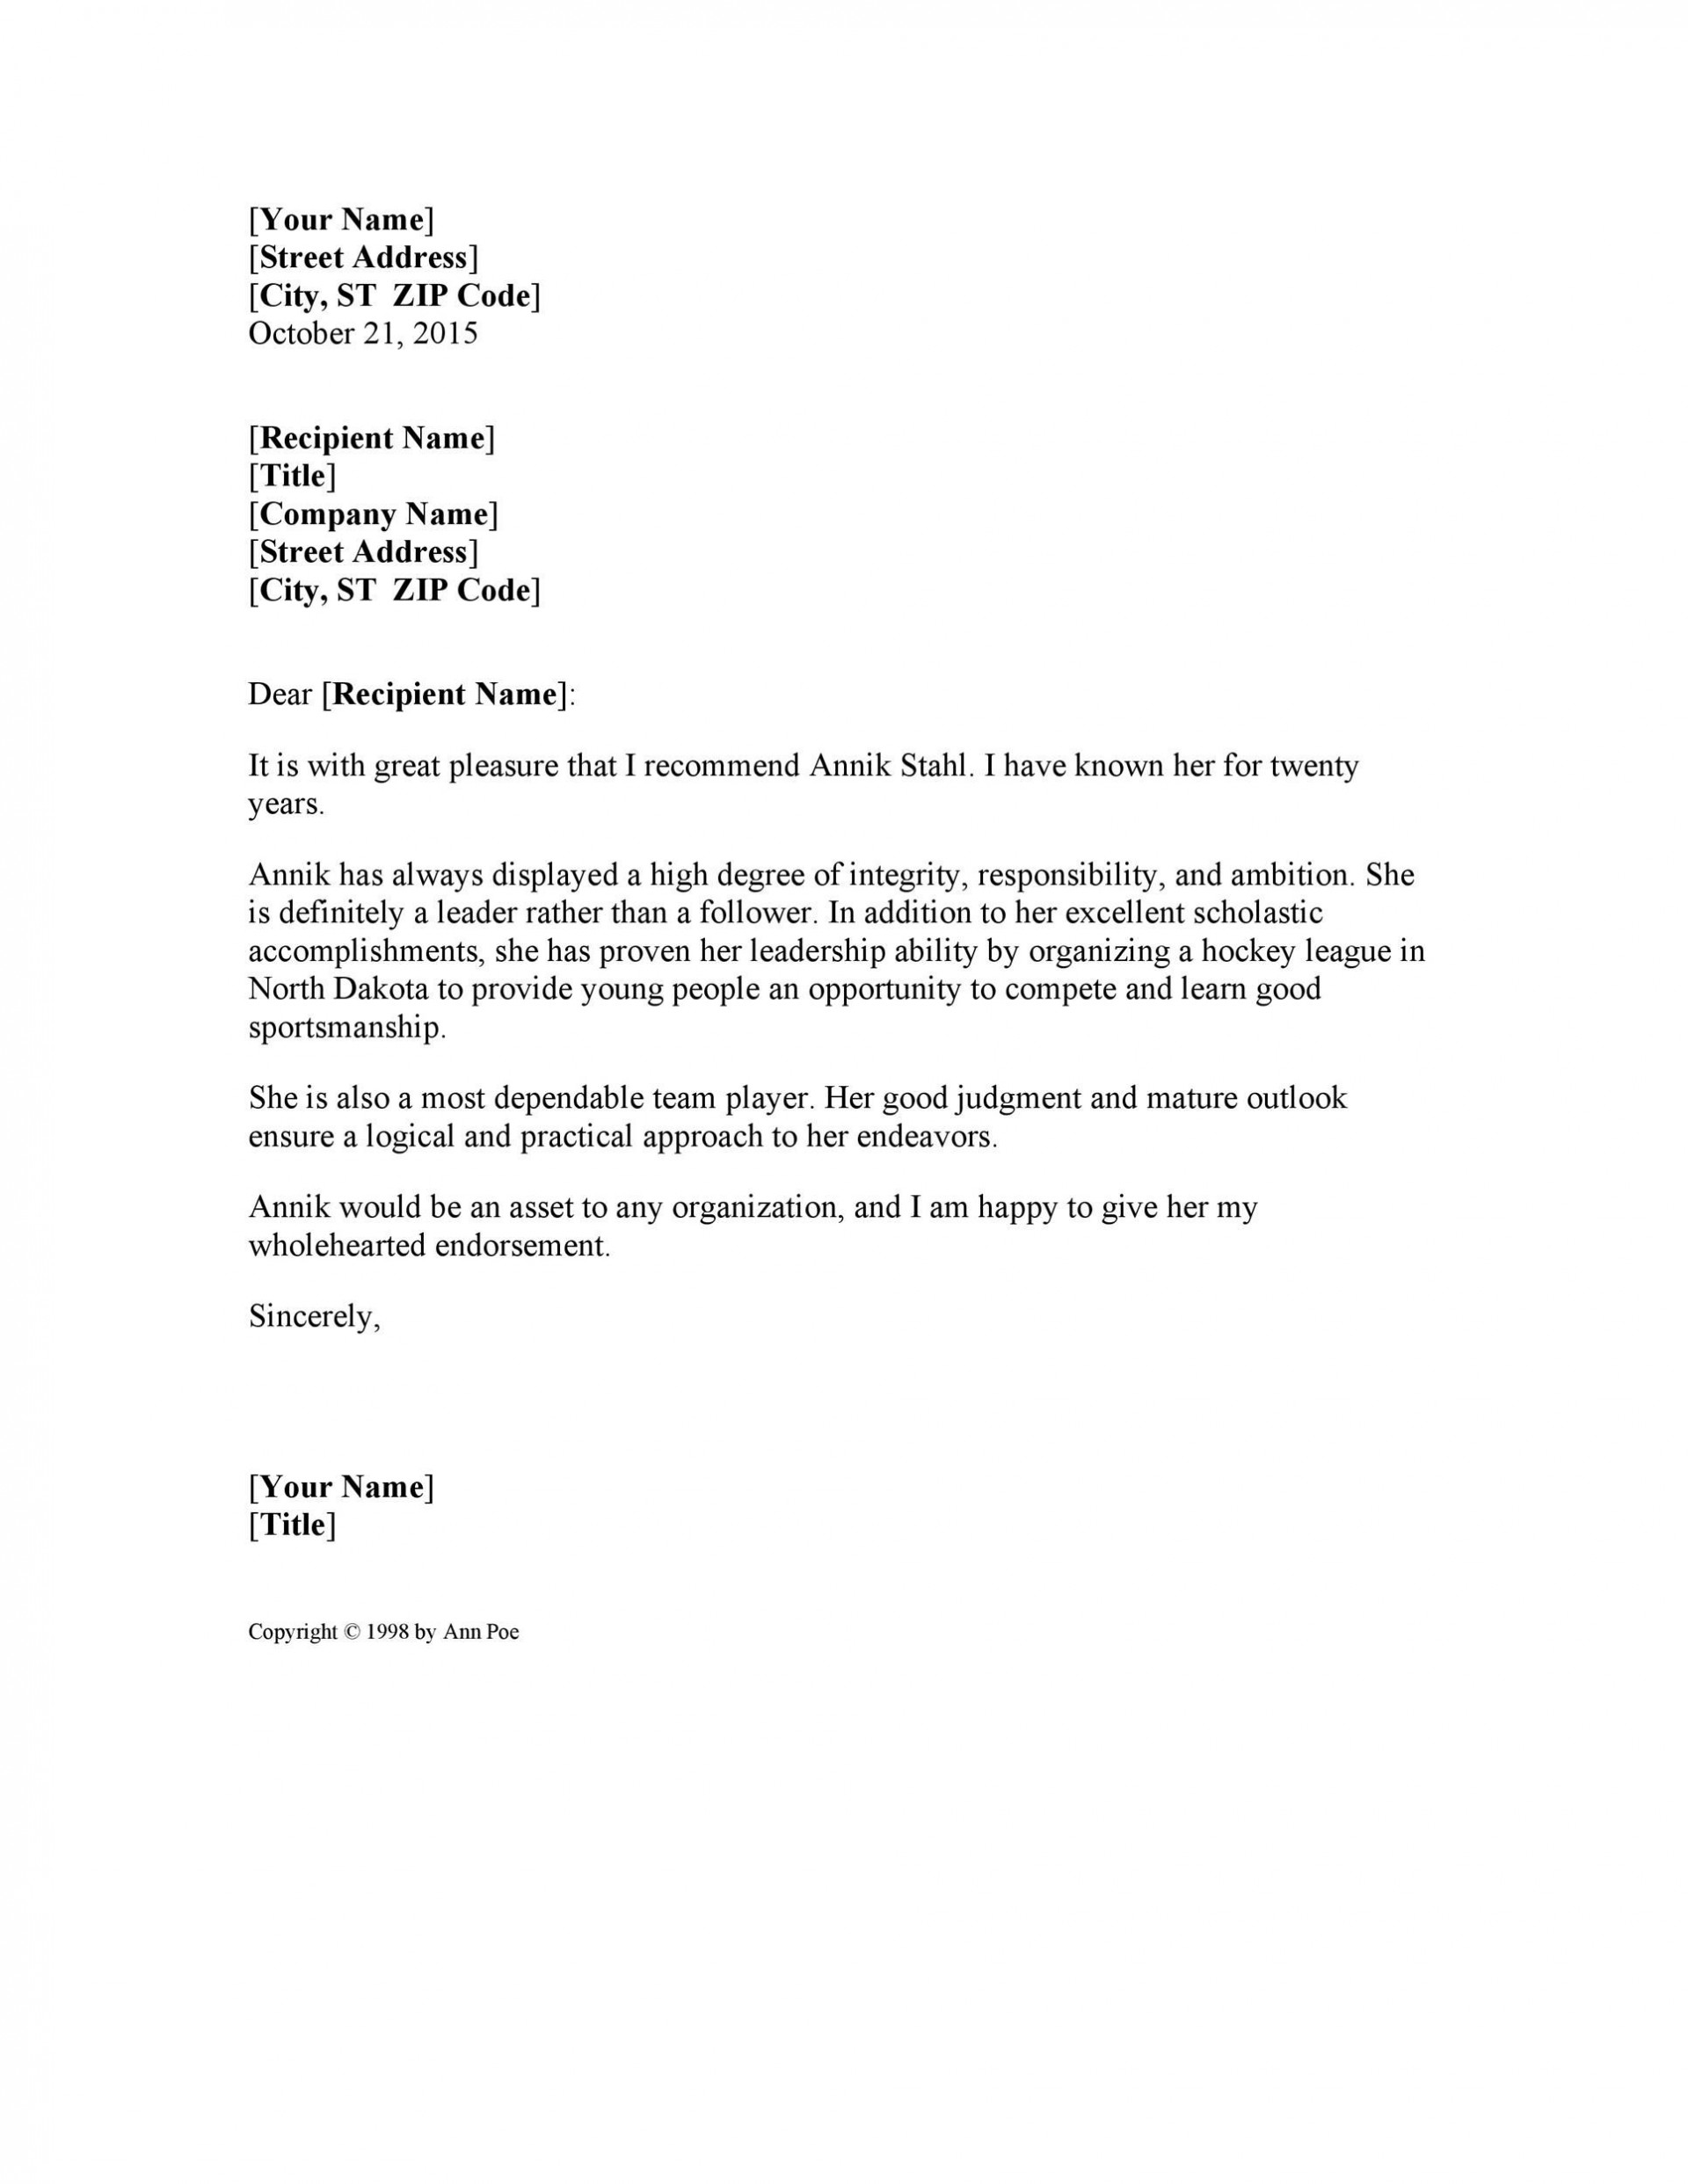 007 Wondrou Personal Letter Of Recommendation Template Image  Templates Character Reference Word1920